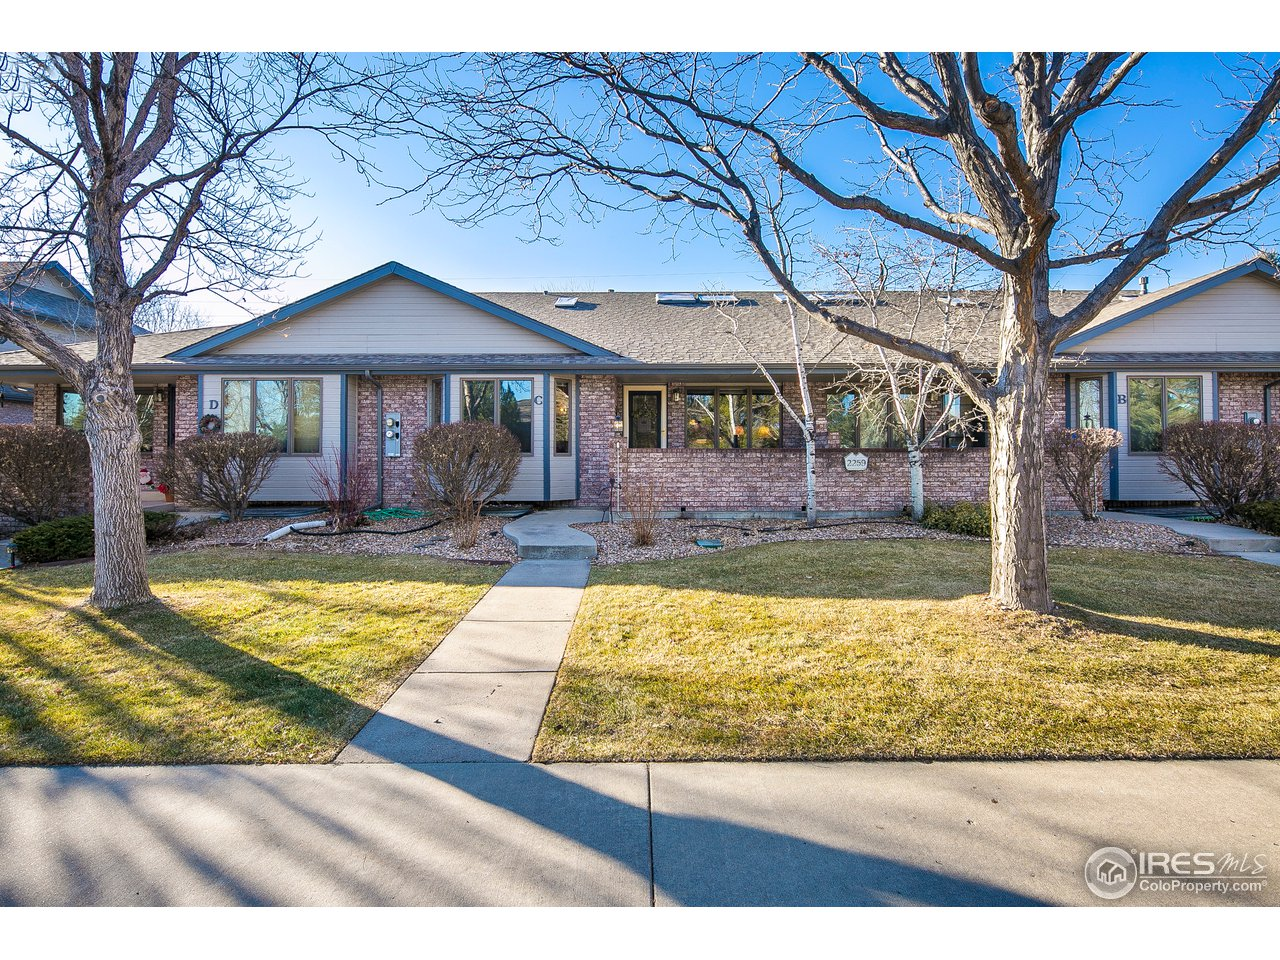 2259 46th Ave Ct C, Greeley CO 80634